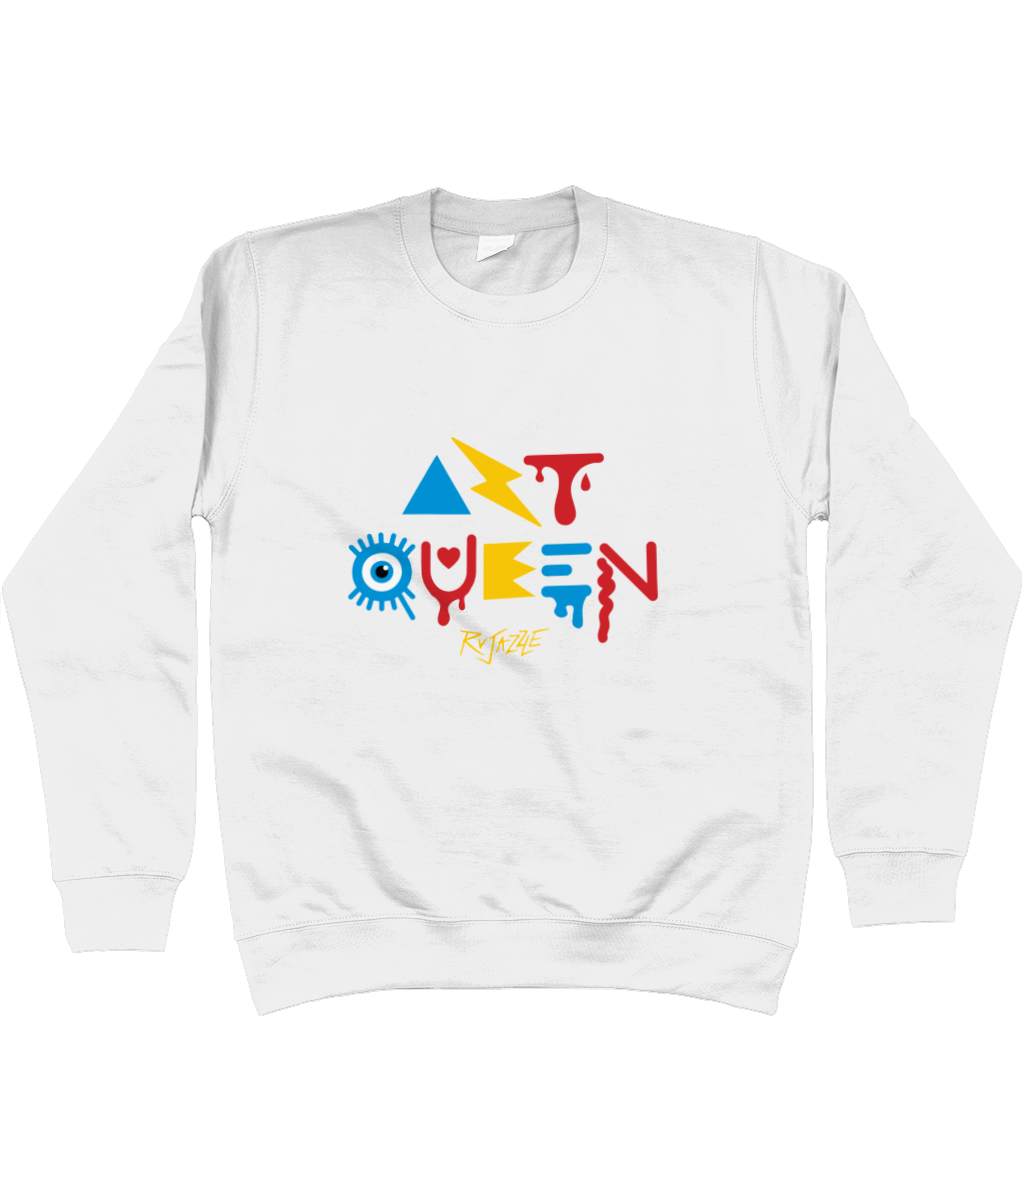 Rujazzle - Art Queen Sweatshirt - SNATCHED